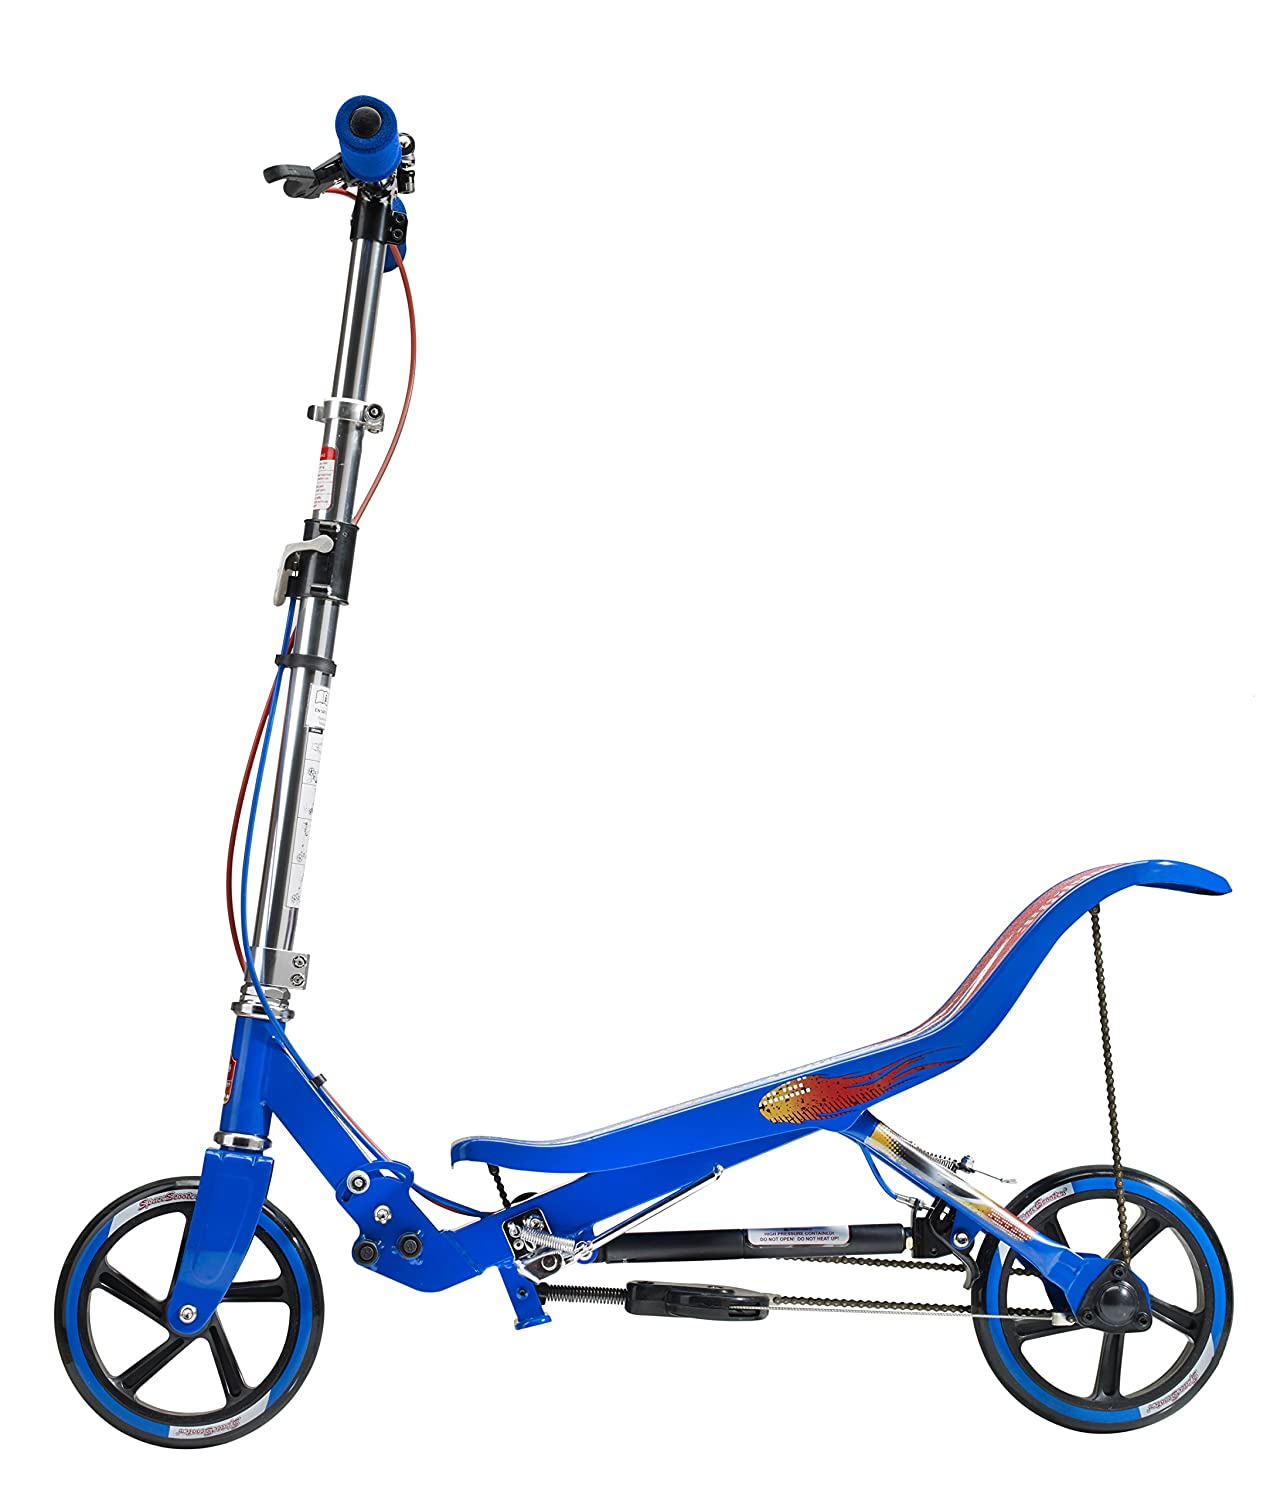 Bicicleta plegable decathlon espaa